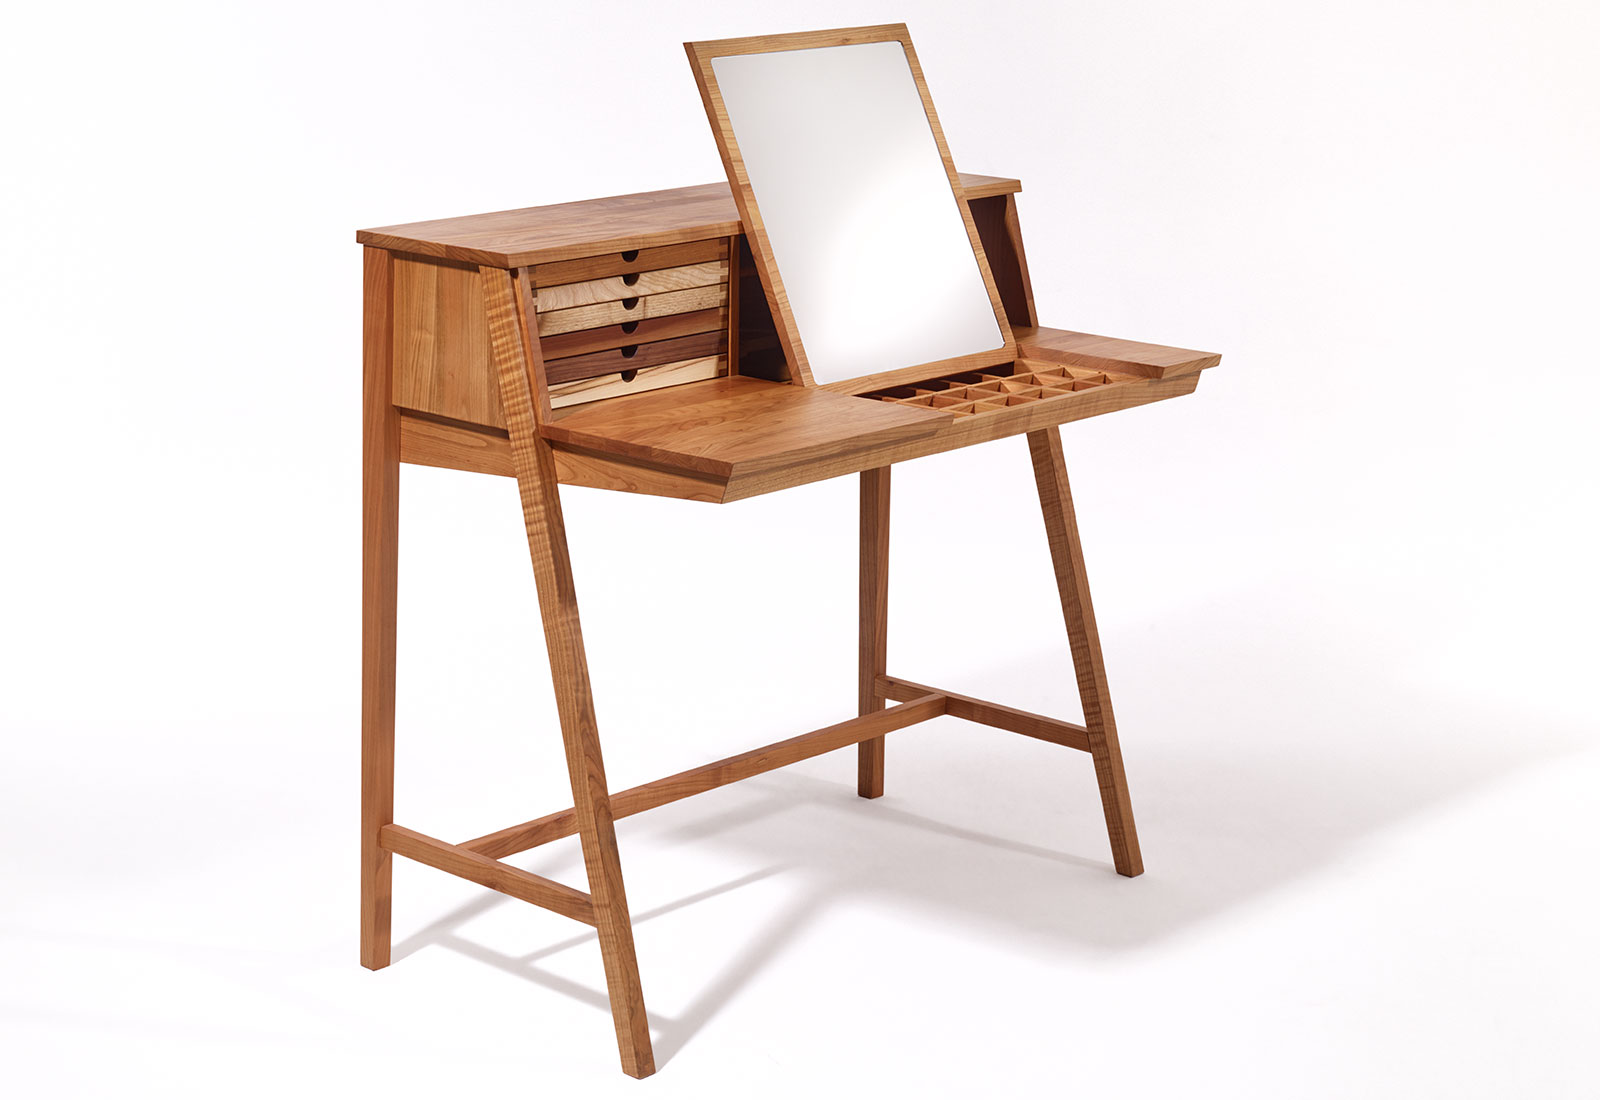 Sekretär Modern Computer Sixtematic Belle 2 1 Makeup Table And Writing Desk By Sixay